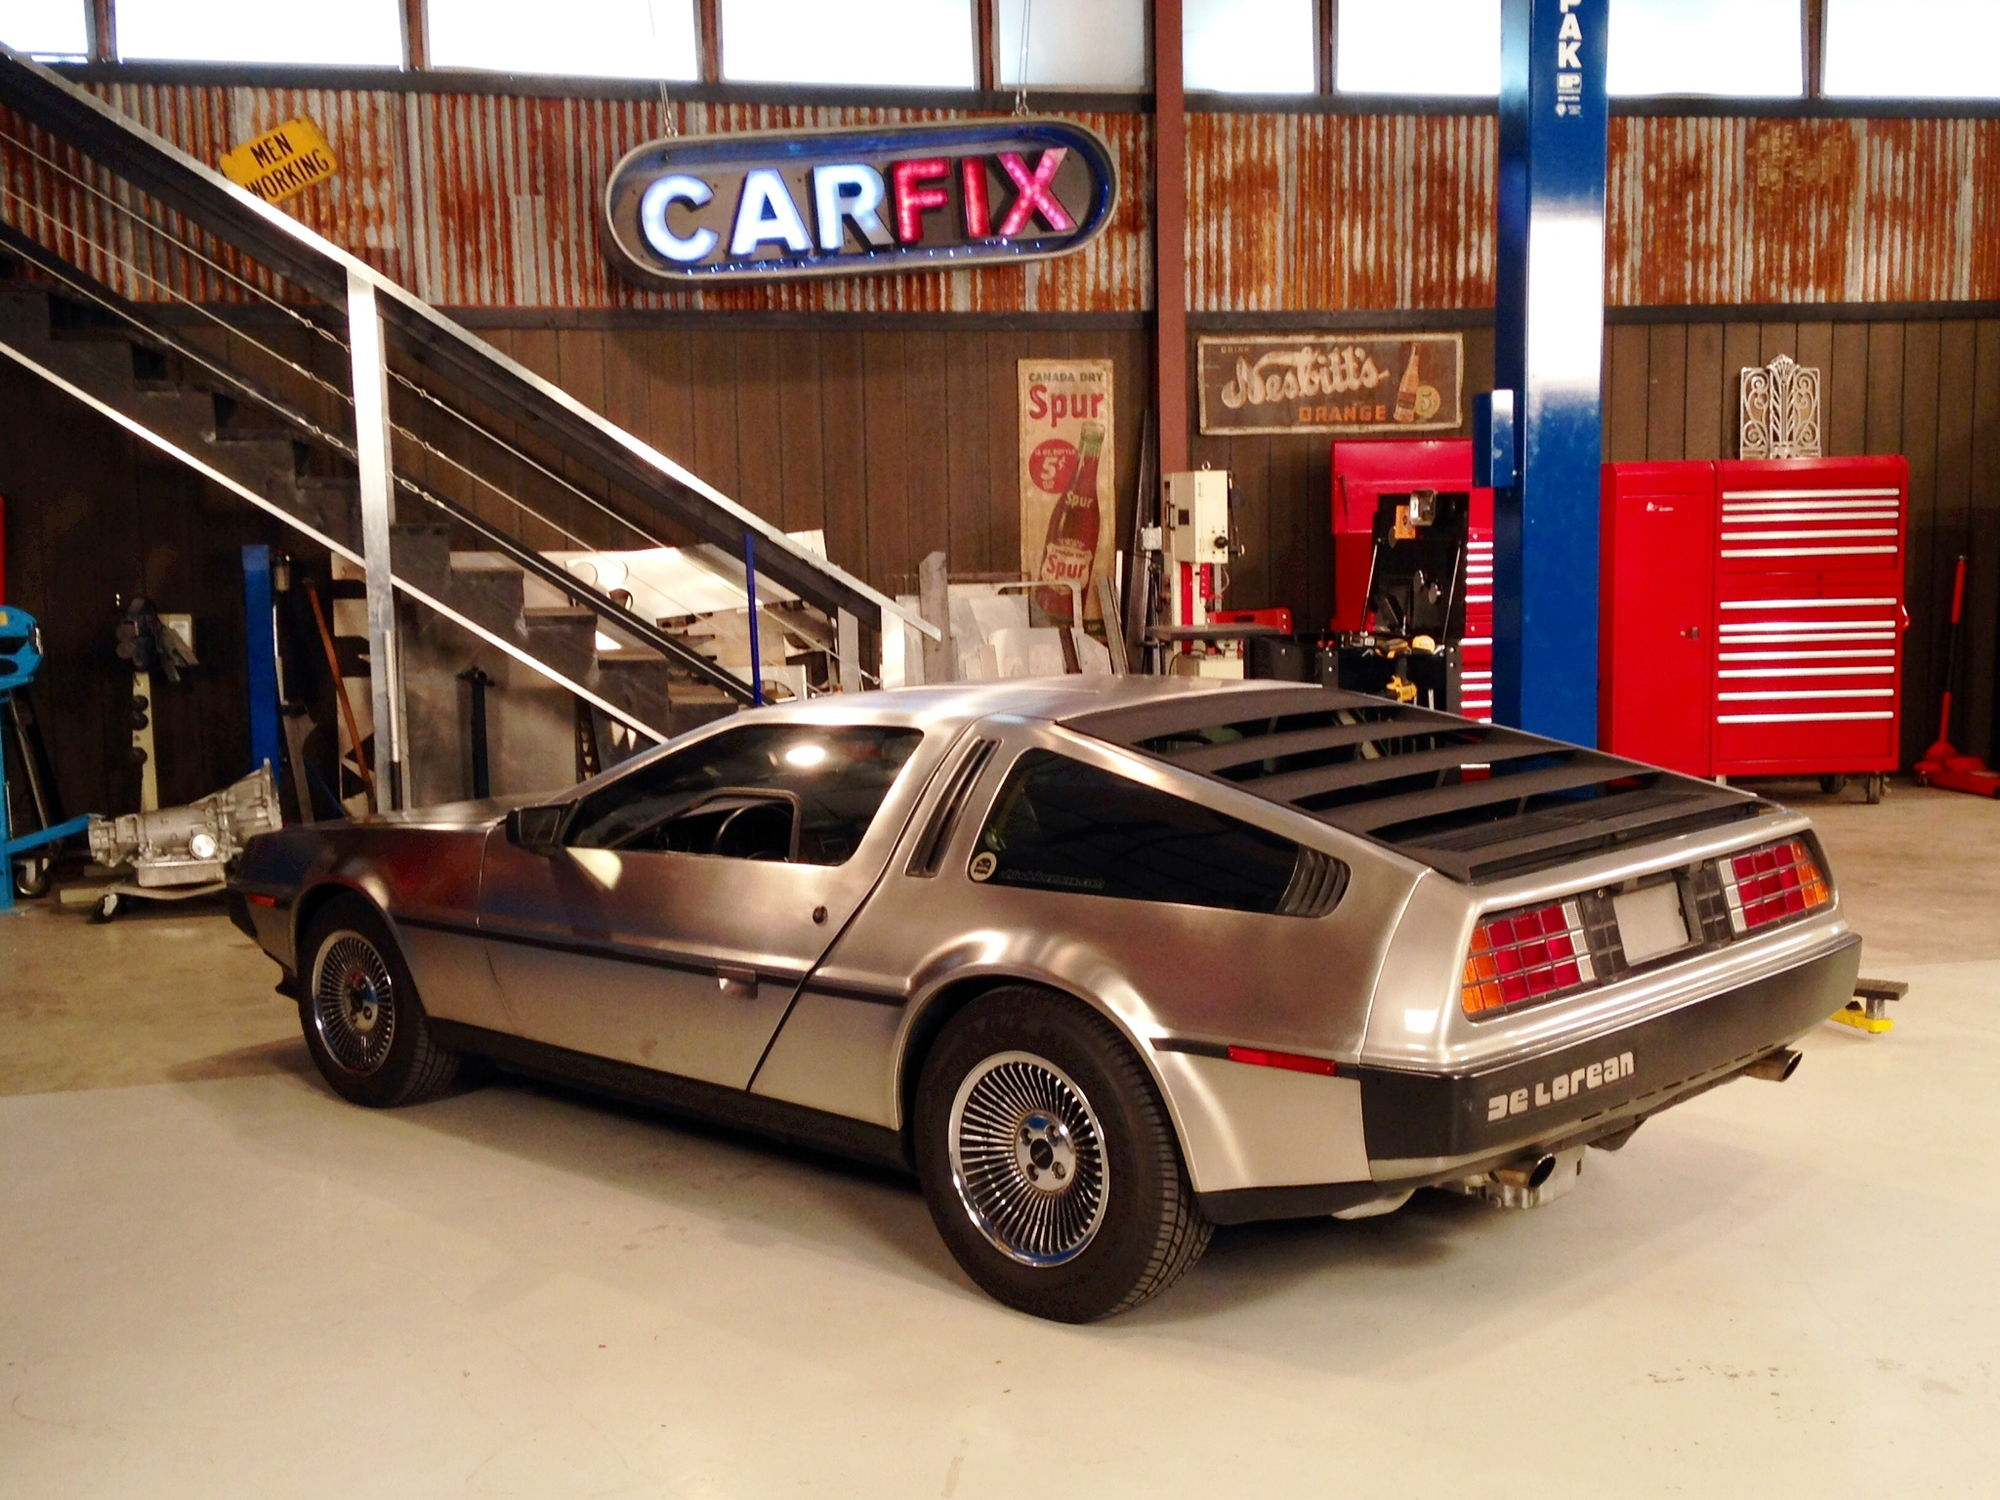 My Car LS1 DeLorean Used For An Episode of Car Fix on Velocity